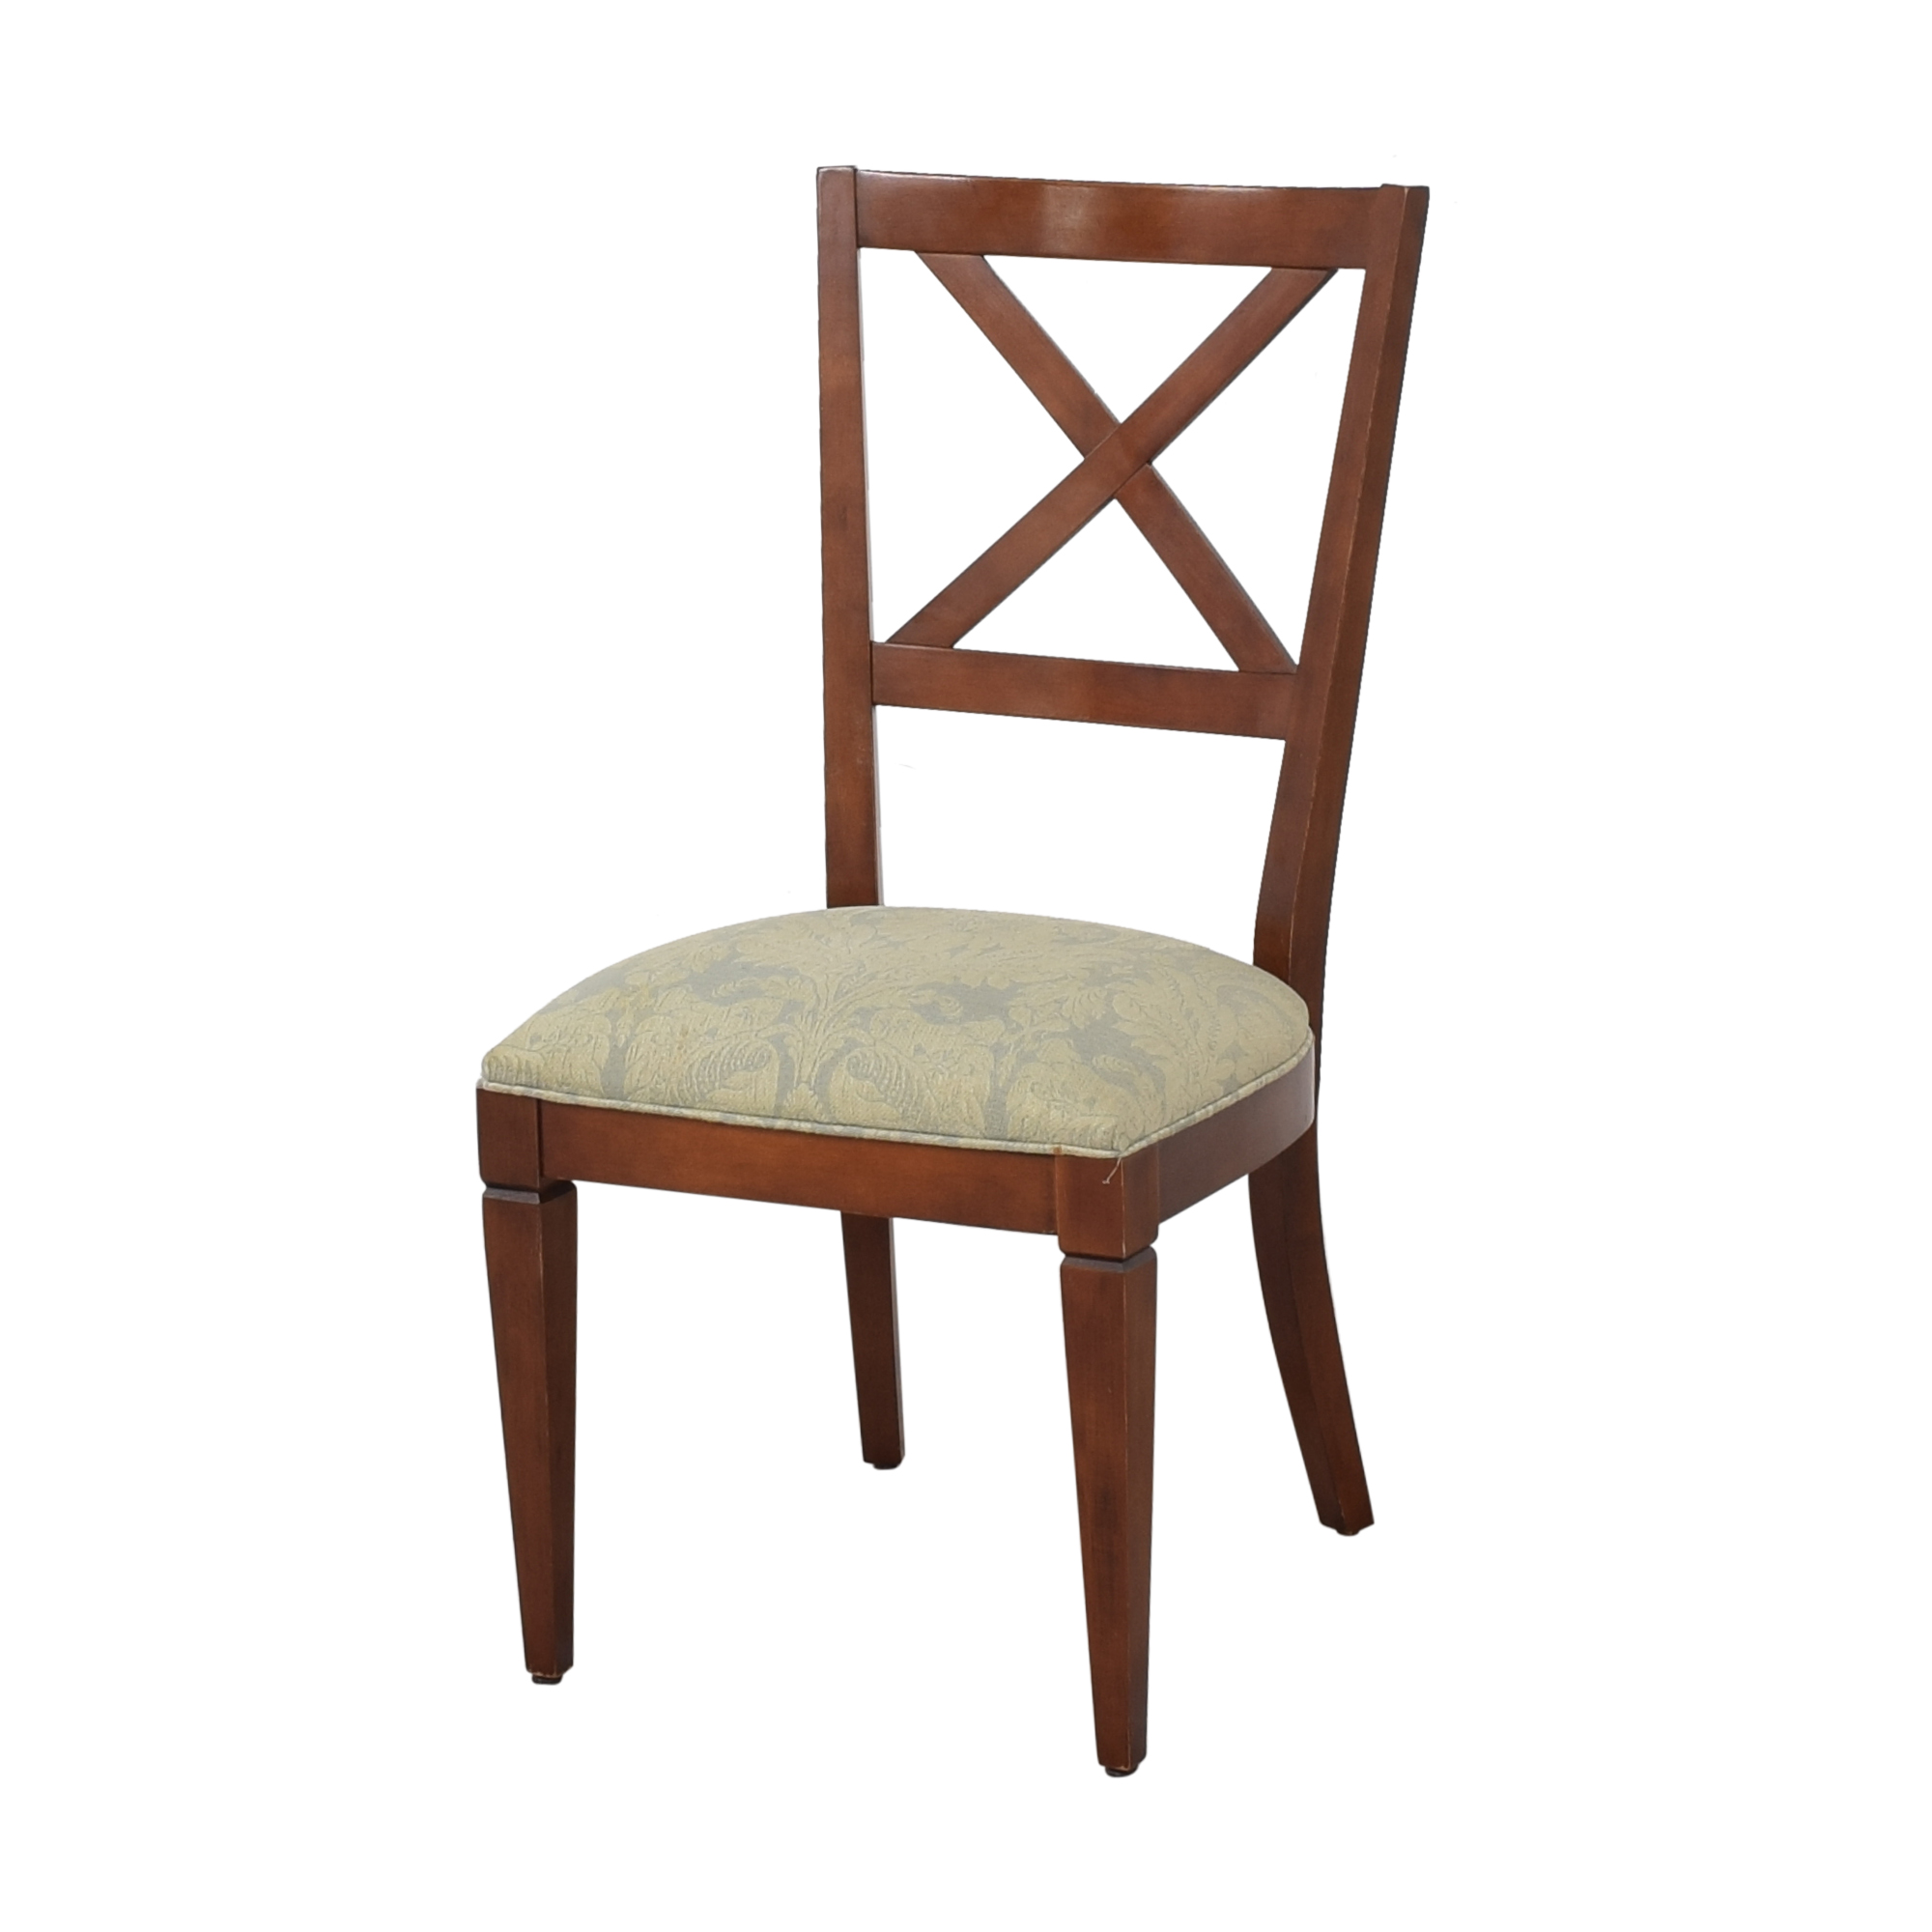 Ethan Allen Ethan Allen Dining Chairs Dining Chairs